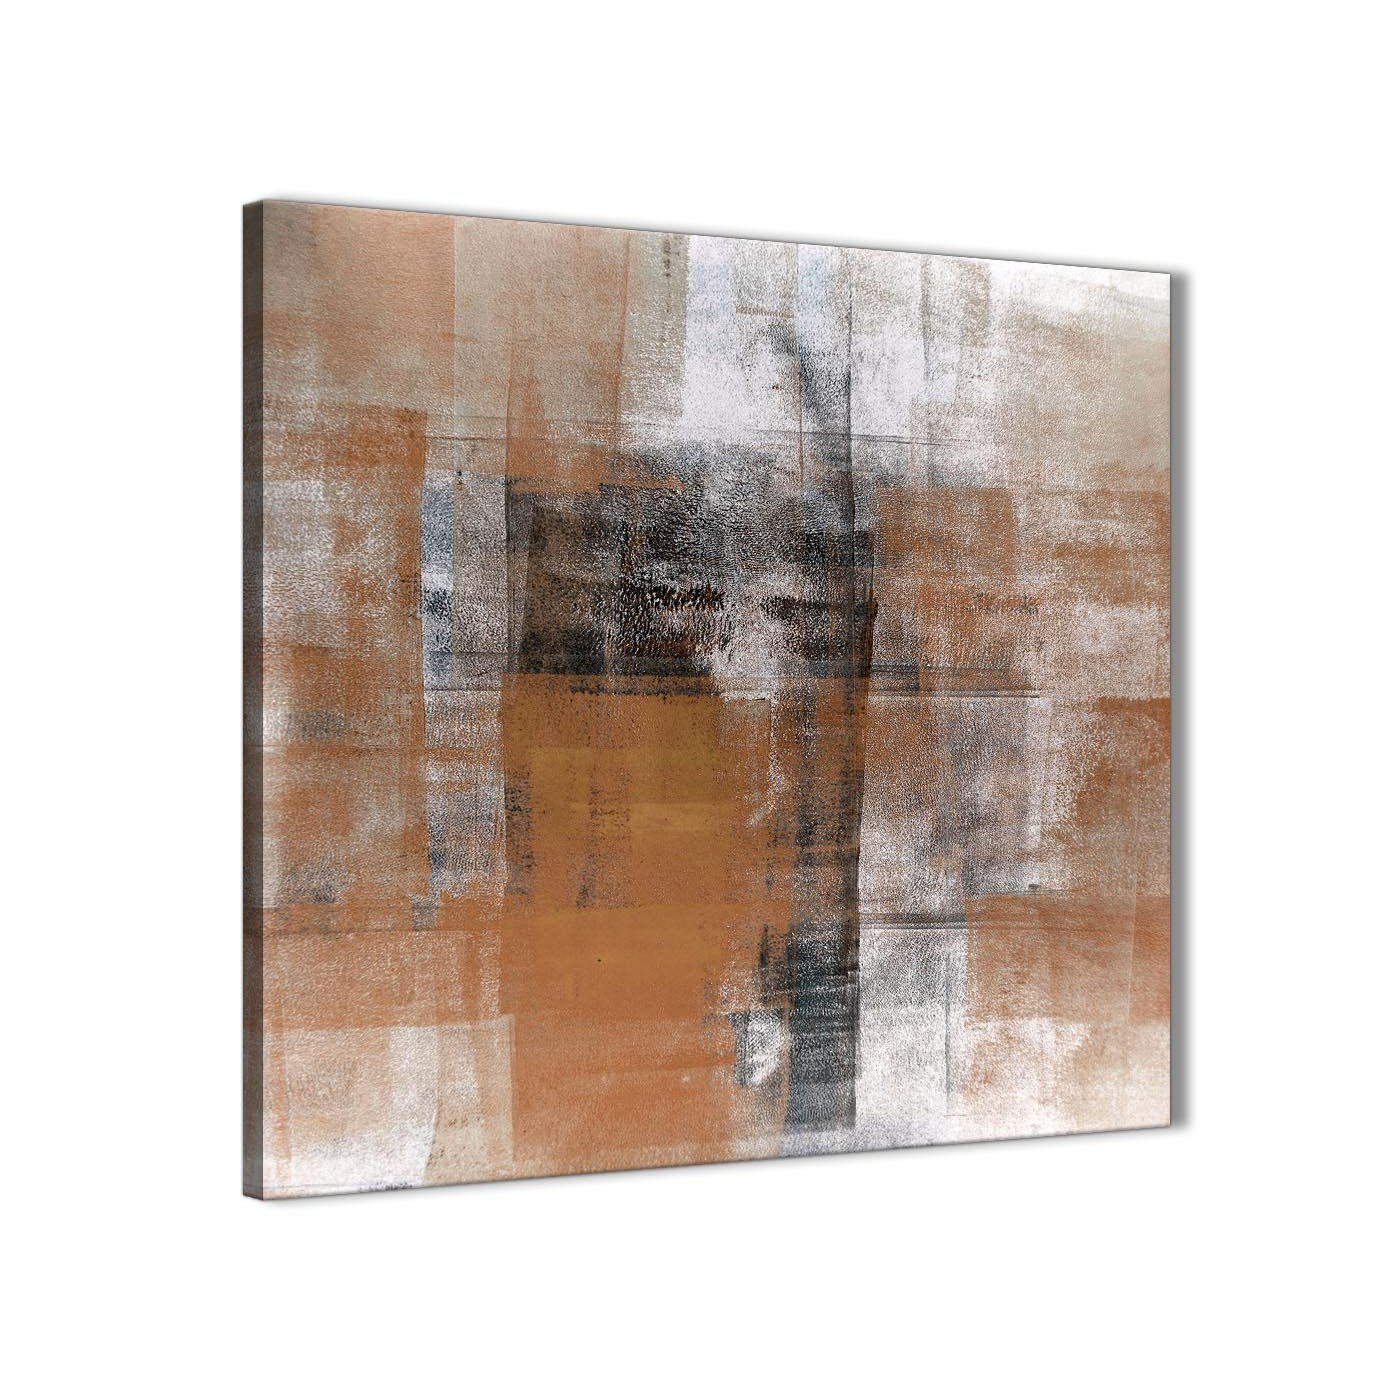 Cheap Canvas Pictures Orange Black White Painting Bathroom Canvas Wall Art